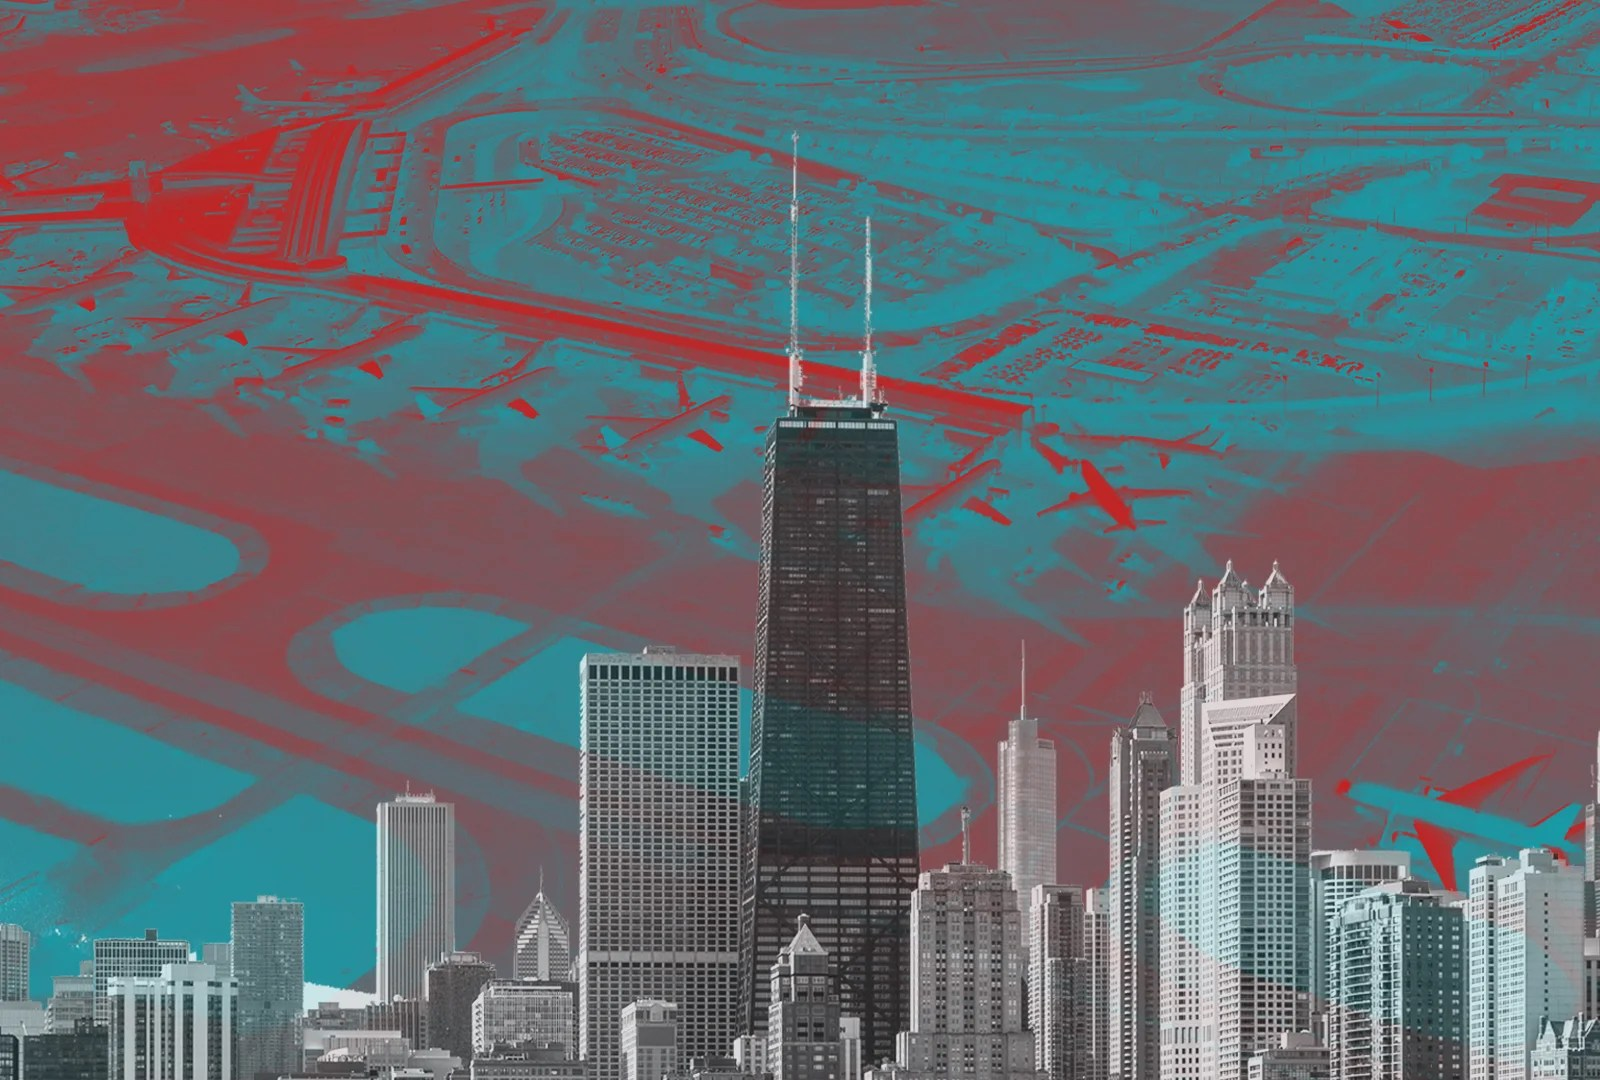 Chicago O'Hare vs. Midway: Which Airport Should I Fly Into?